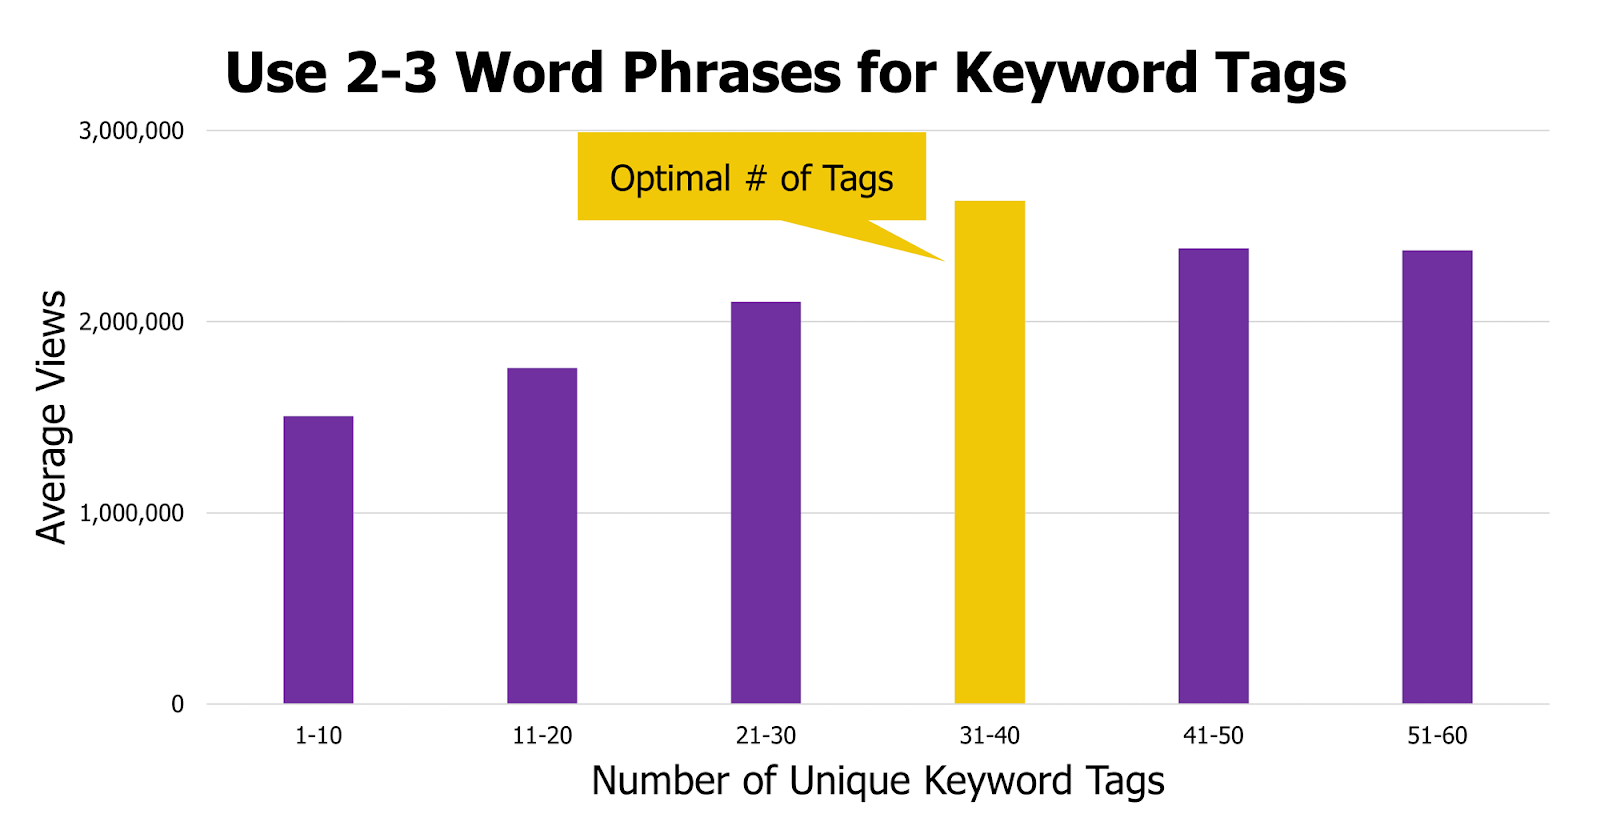 A bar graph showing the correlation between number of unique keyword tags and the average views.